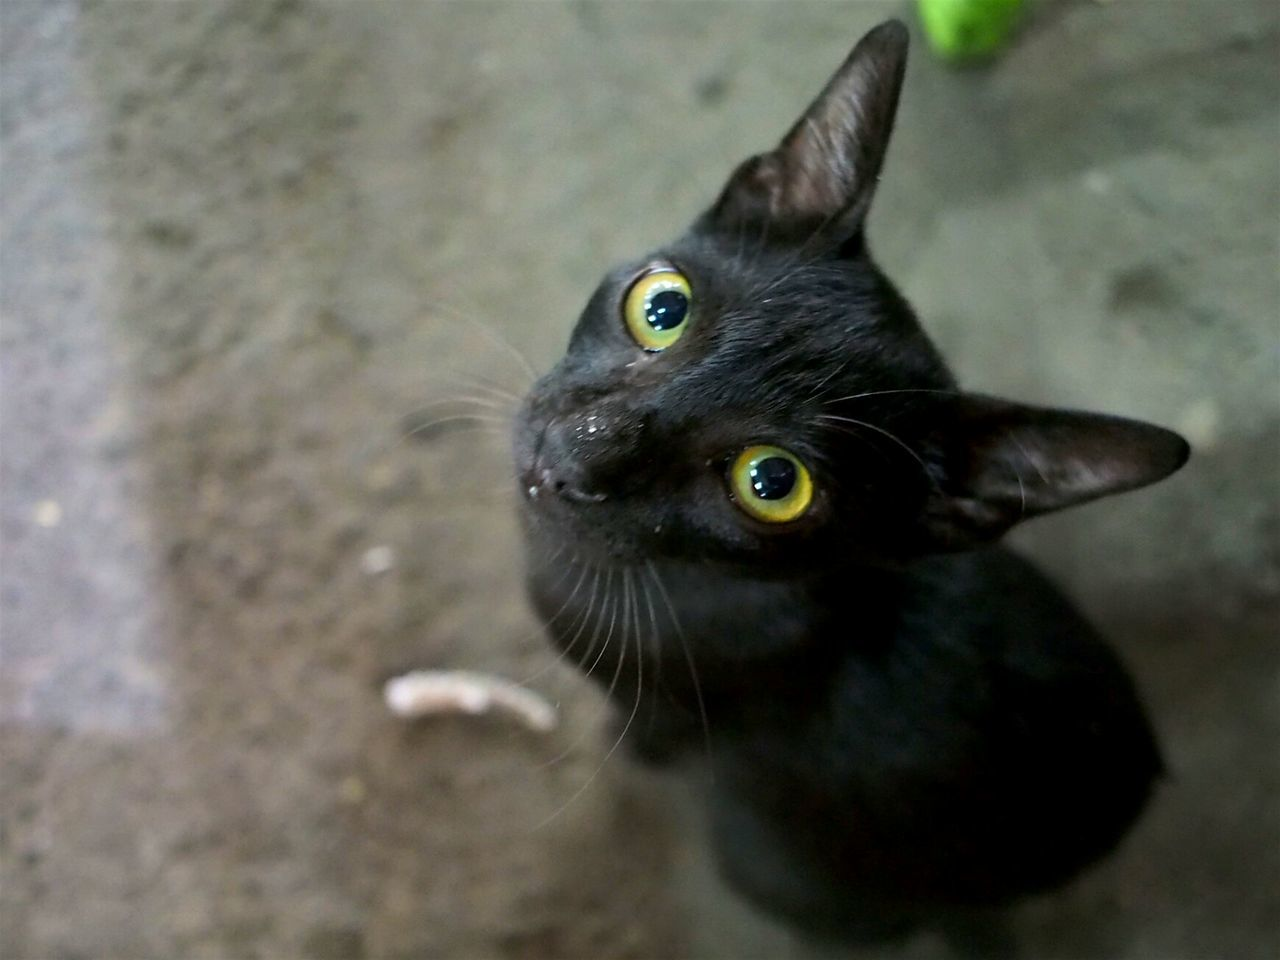 ...starring contest One Animal Yellow Eyes Black Color Animal Themes Domestic Cat Animal Eye Close-up Mammal Outdoors Feline No People Looking At Camera Pets Surabaya City Surabaya Eyeem Indonesia Indonesia_photography Hello World